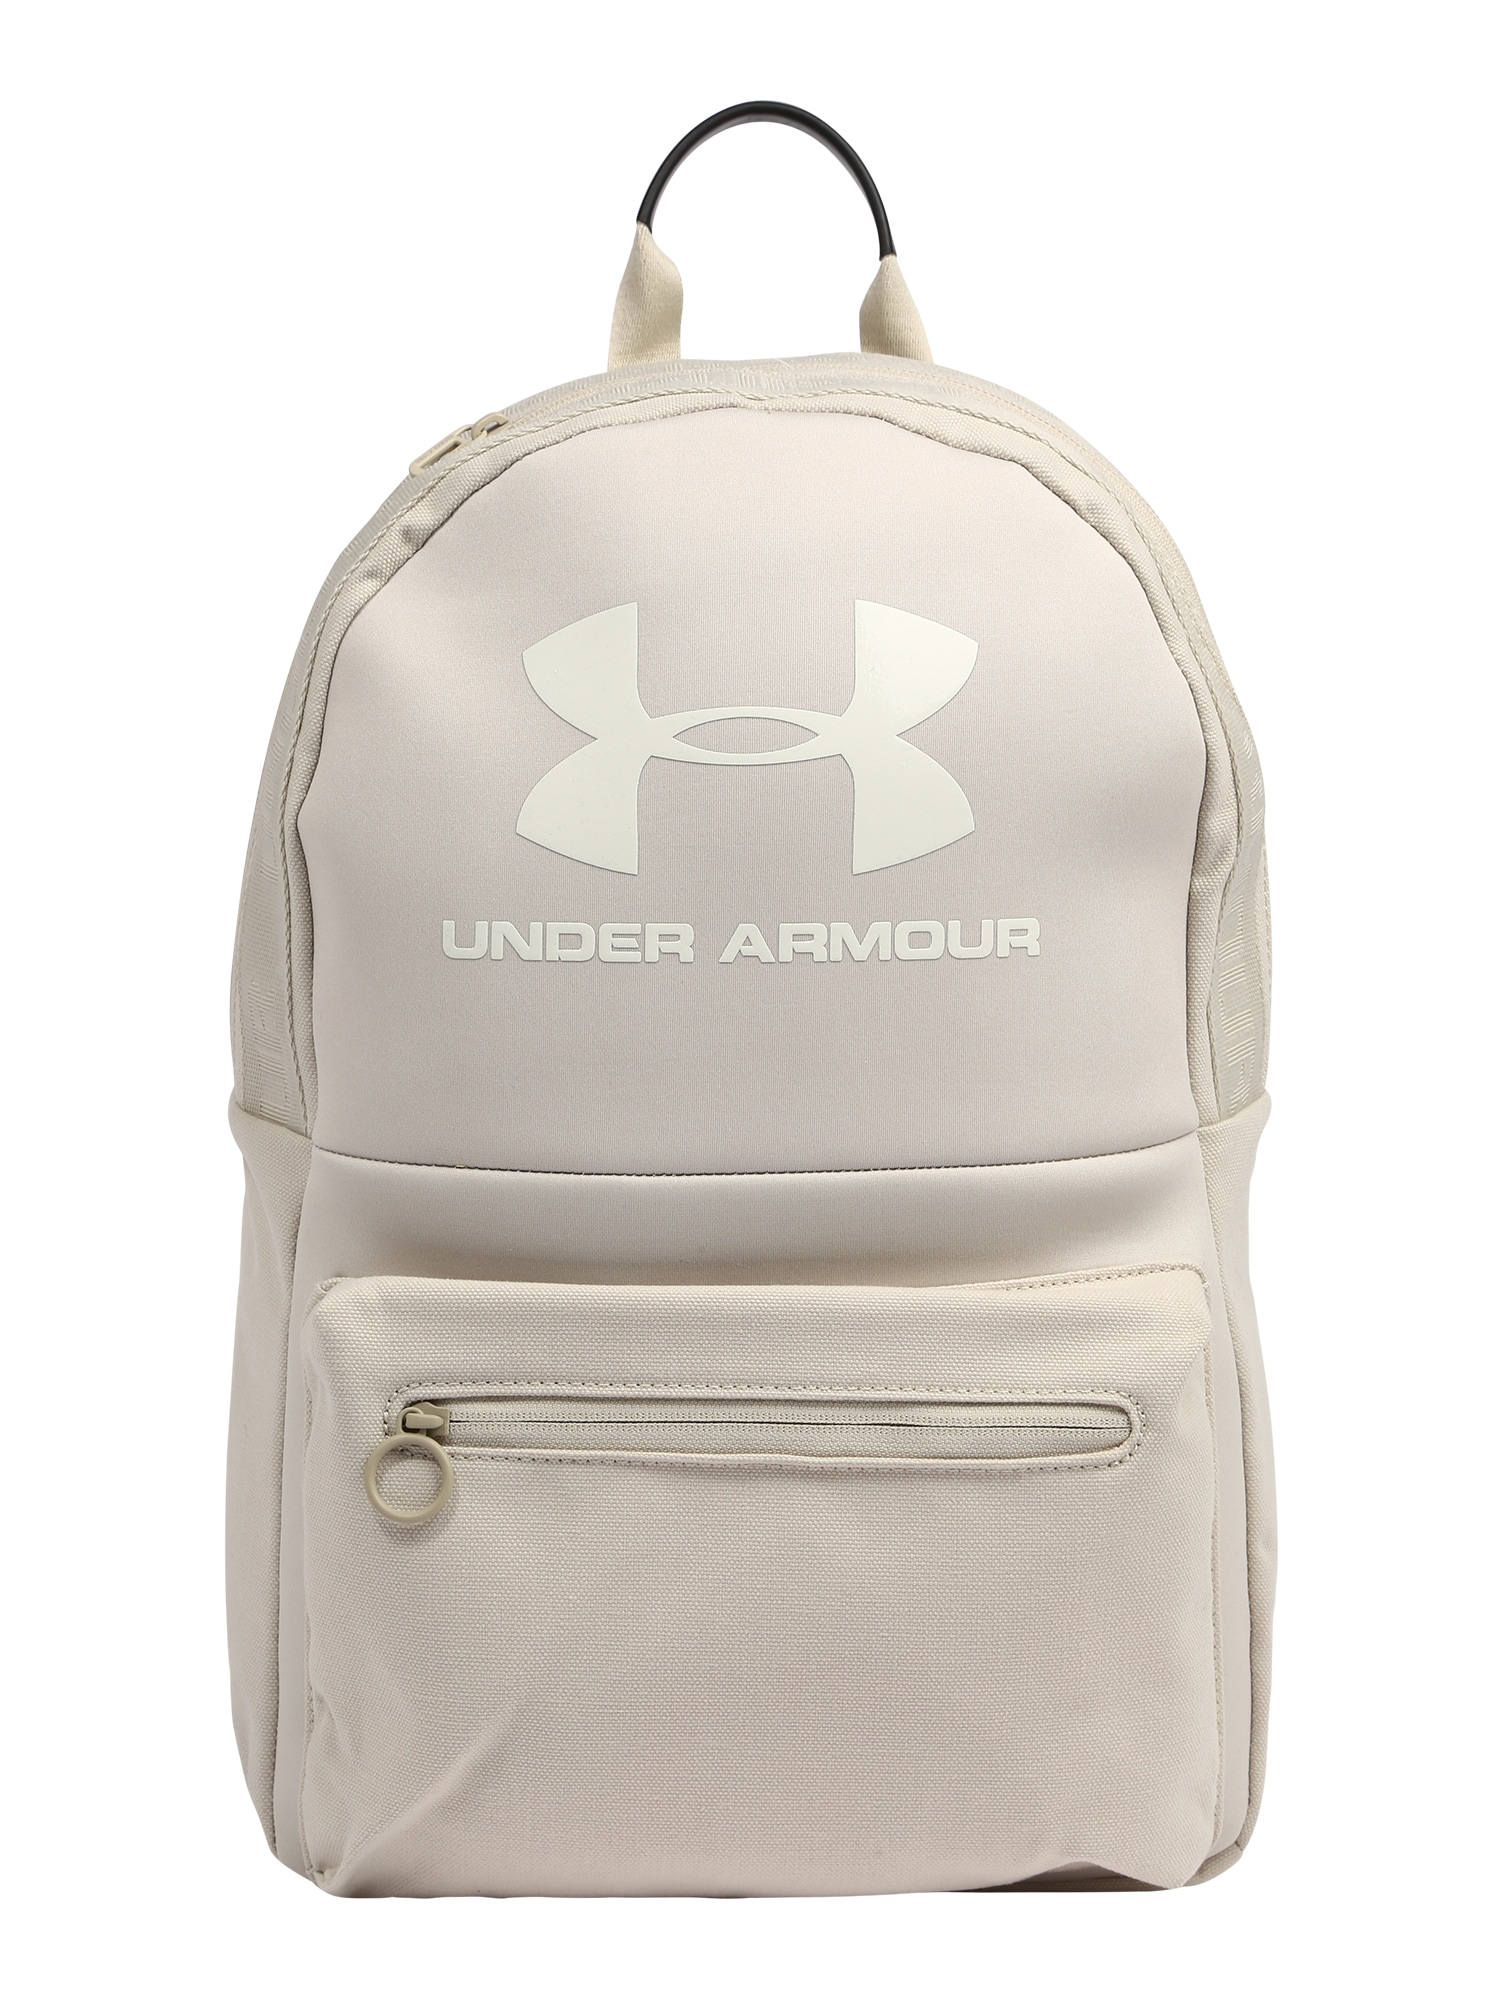 UNDER ARMOUR Sportinė kuprinė